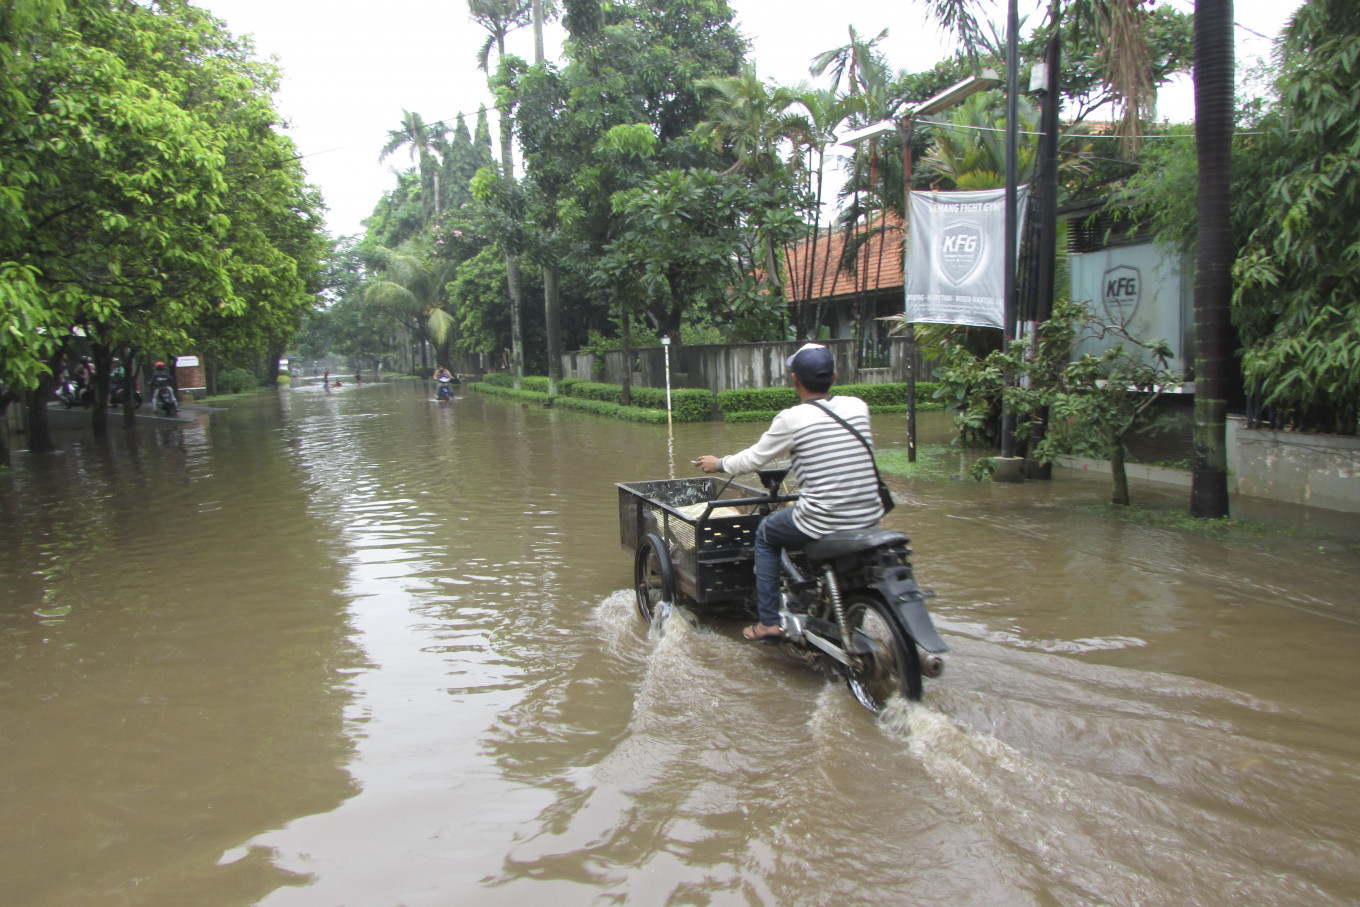 Floods hit residential areas in Bekasi